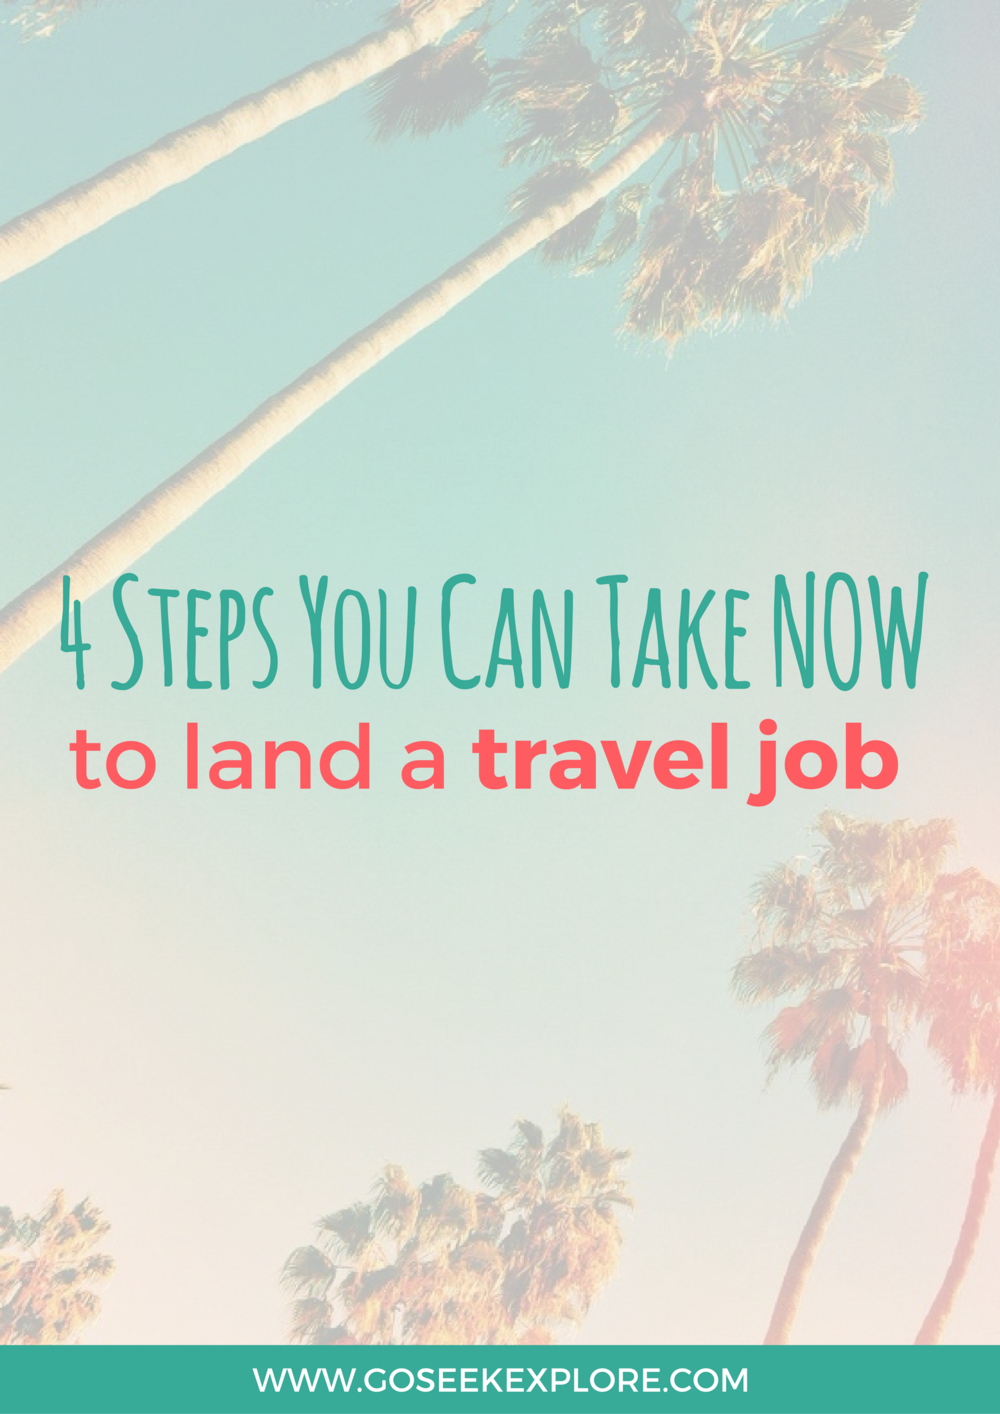 Get started now, to land your travel job later. Working abroad takes a lot of preparation and planning, so it's best to get started with some simple things you can do now!